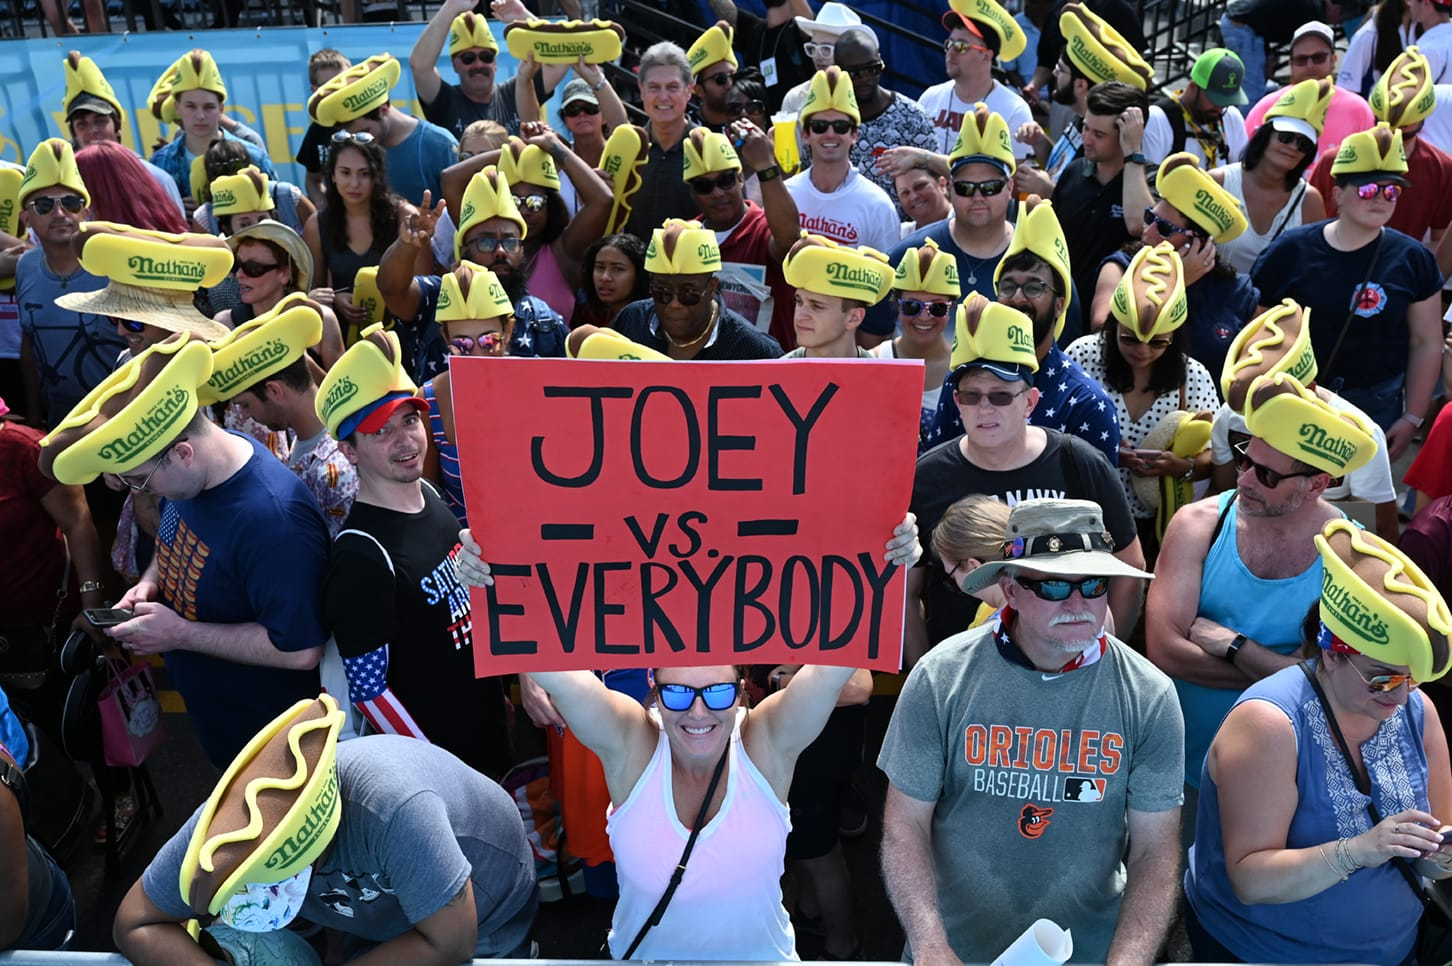 Woman holding 'Joey vs Everybody' sign